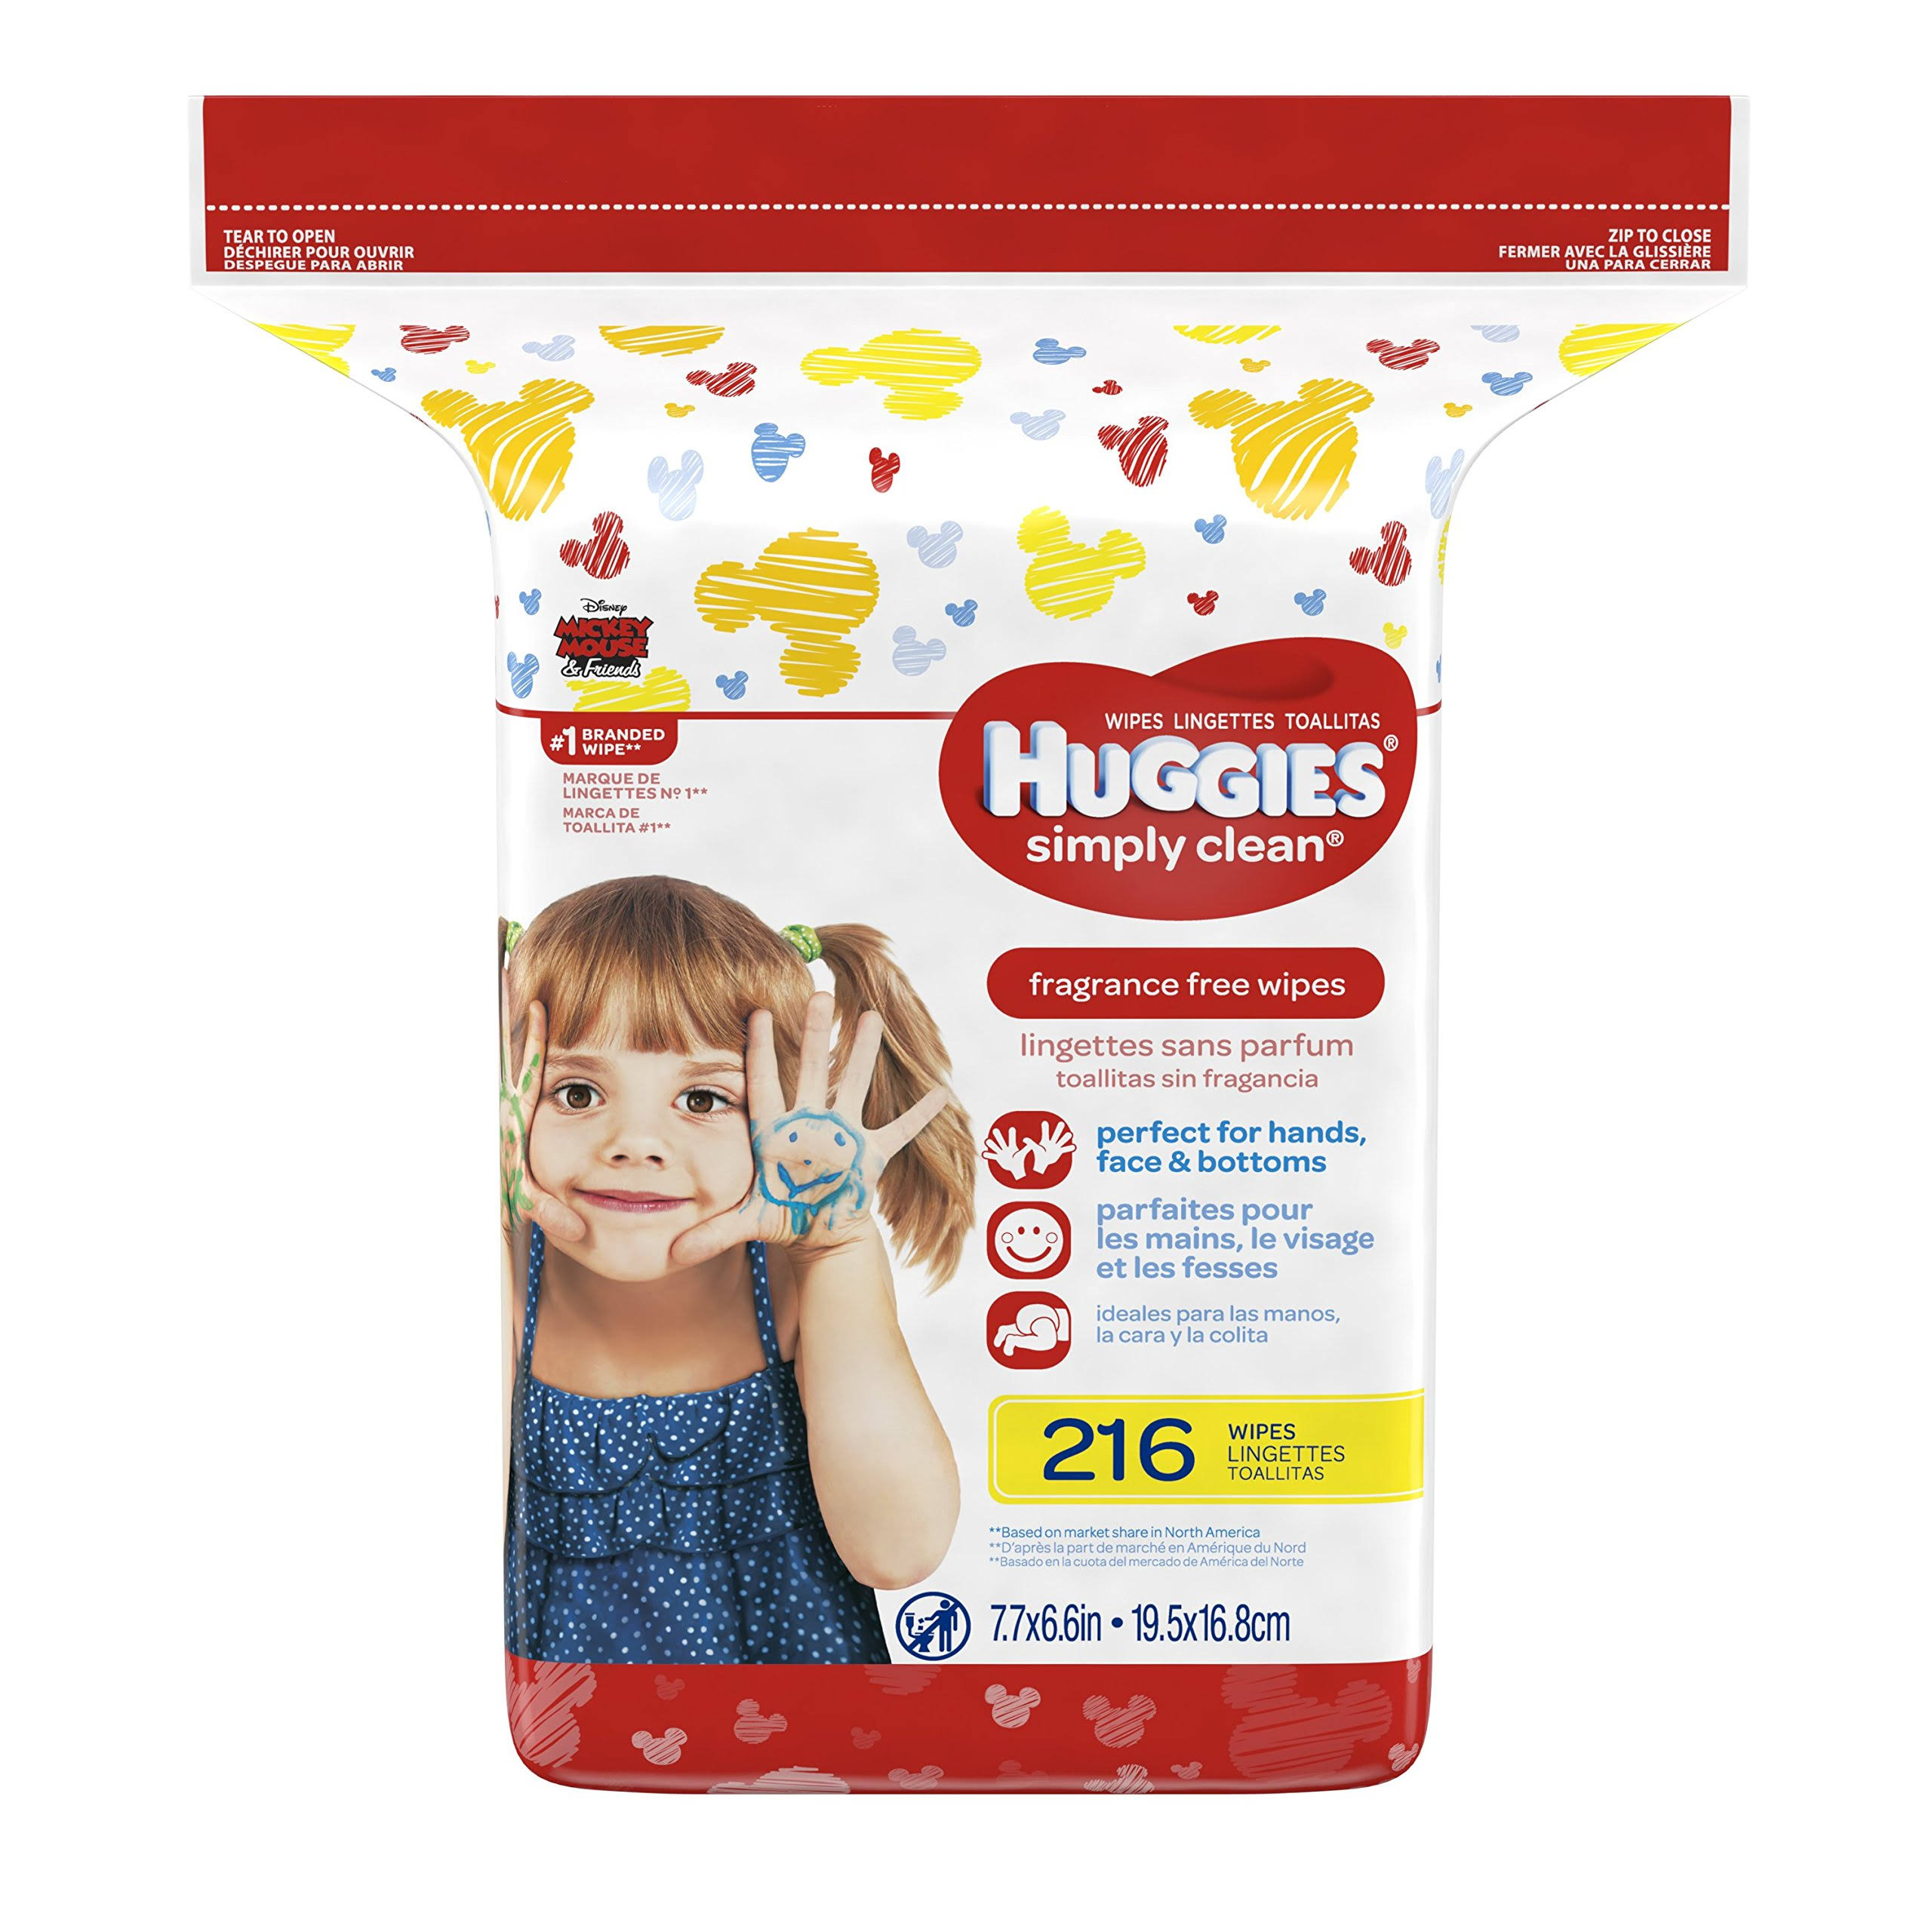 Huggies Simply Clean Fragrance-Free Baby Wipes Refill Pack - 216ct